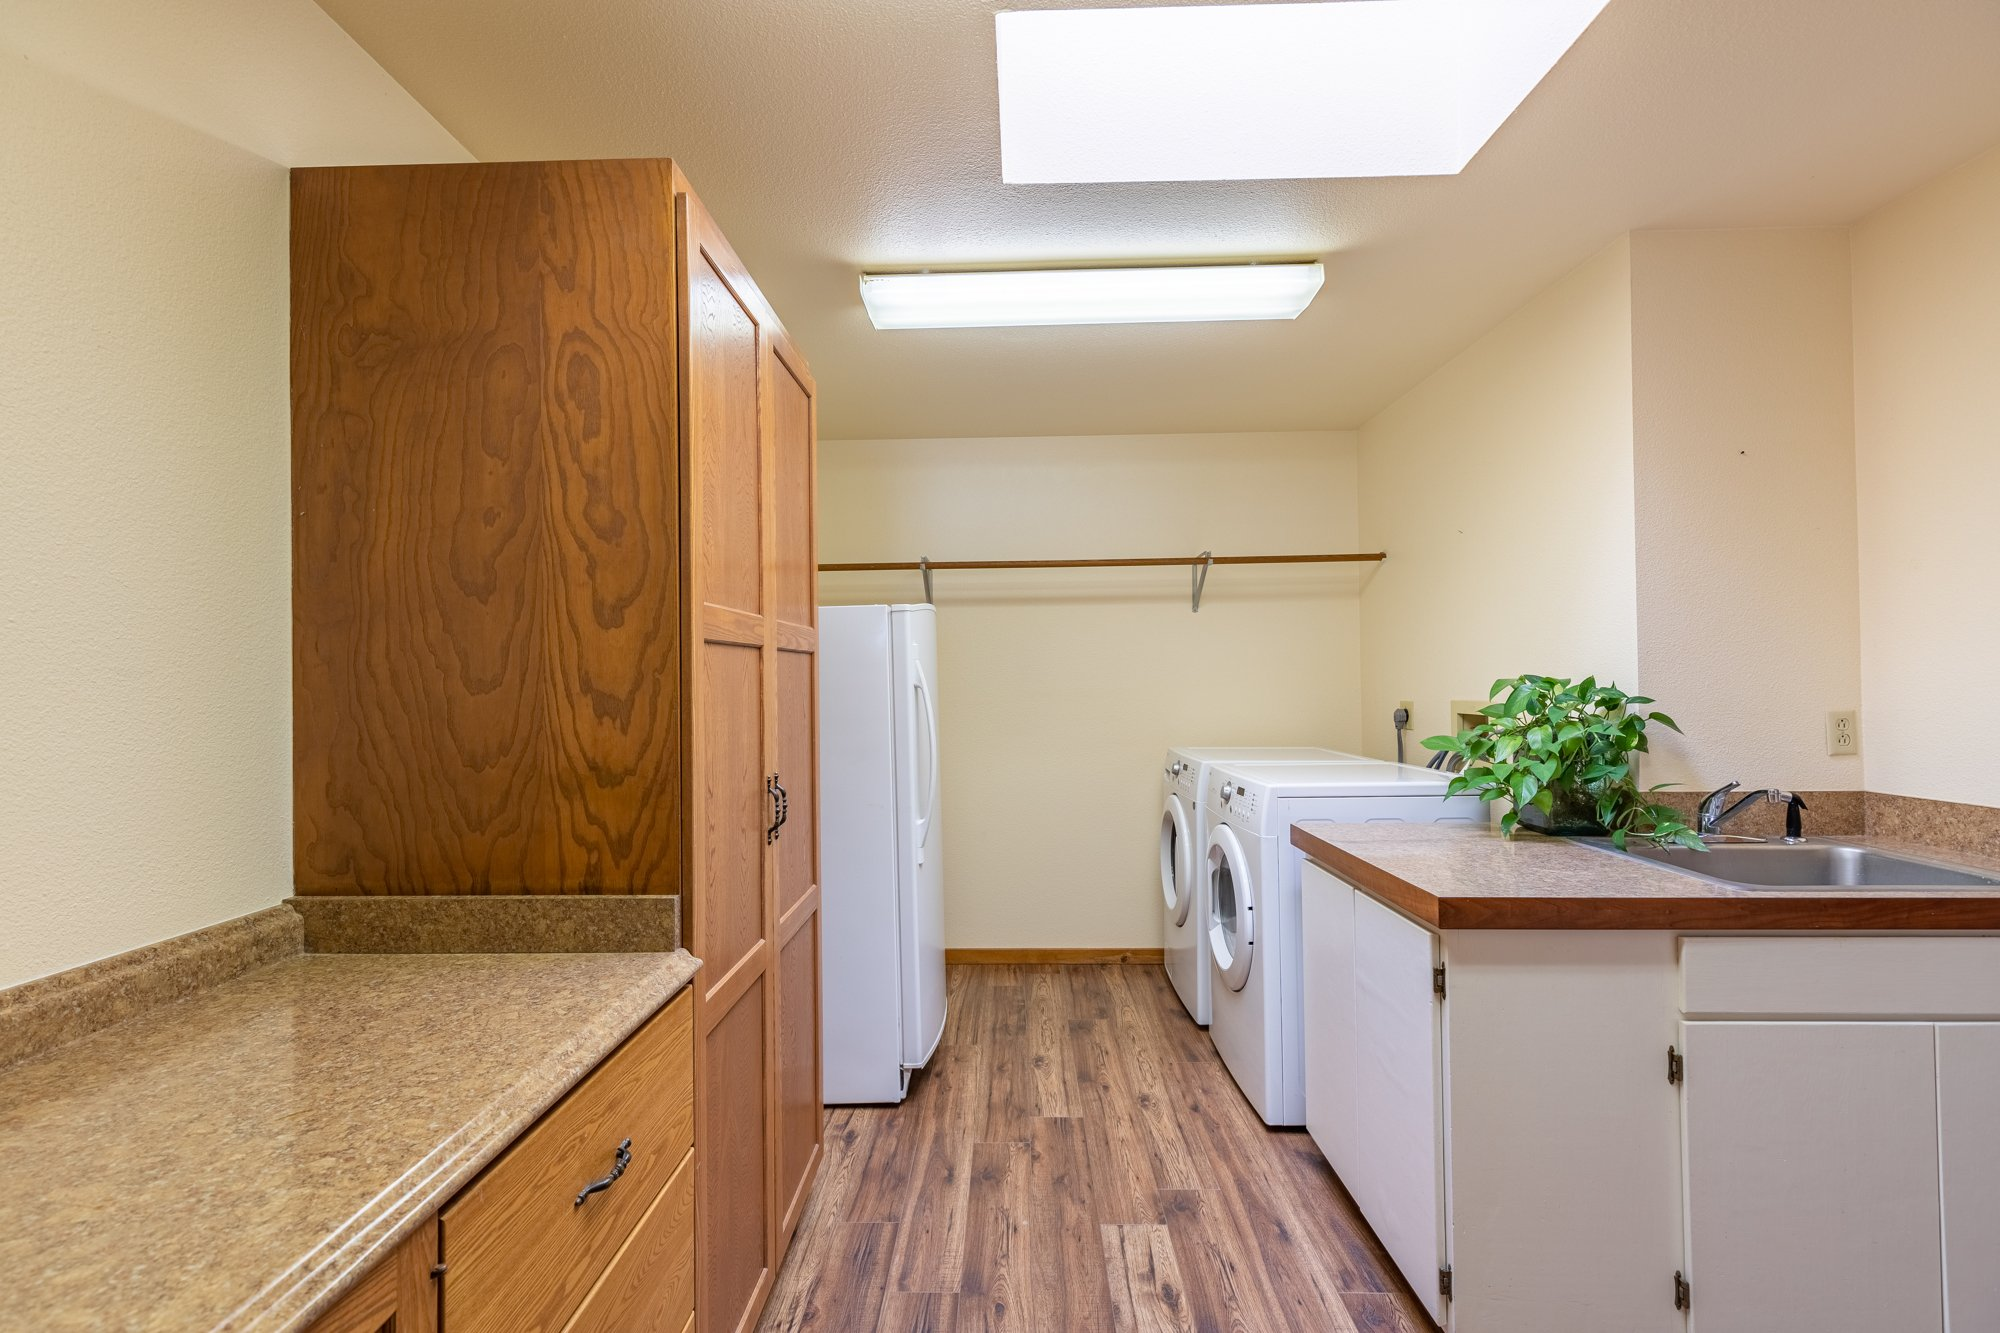 Laundry Room with Storage - 17777 6650 Rd Montrose, CO 81403 - Atha Team Country Real Estate